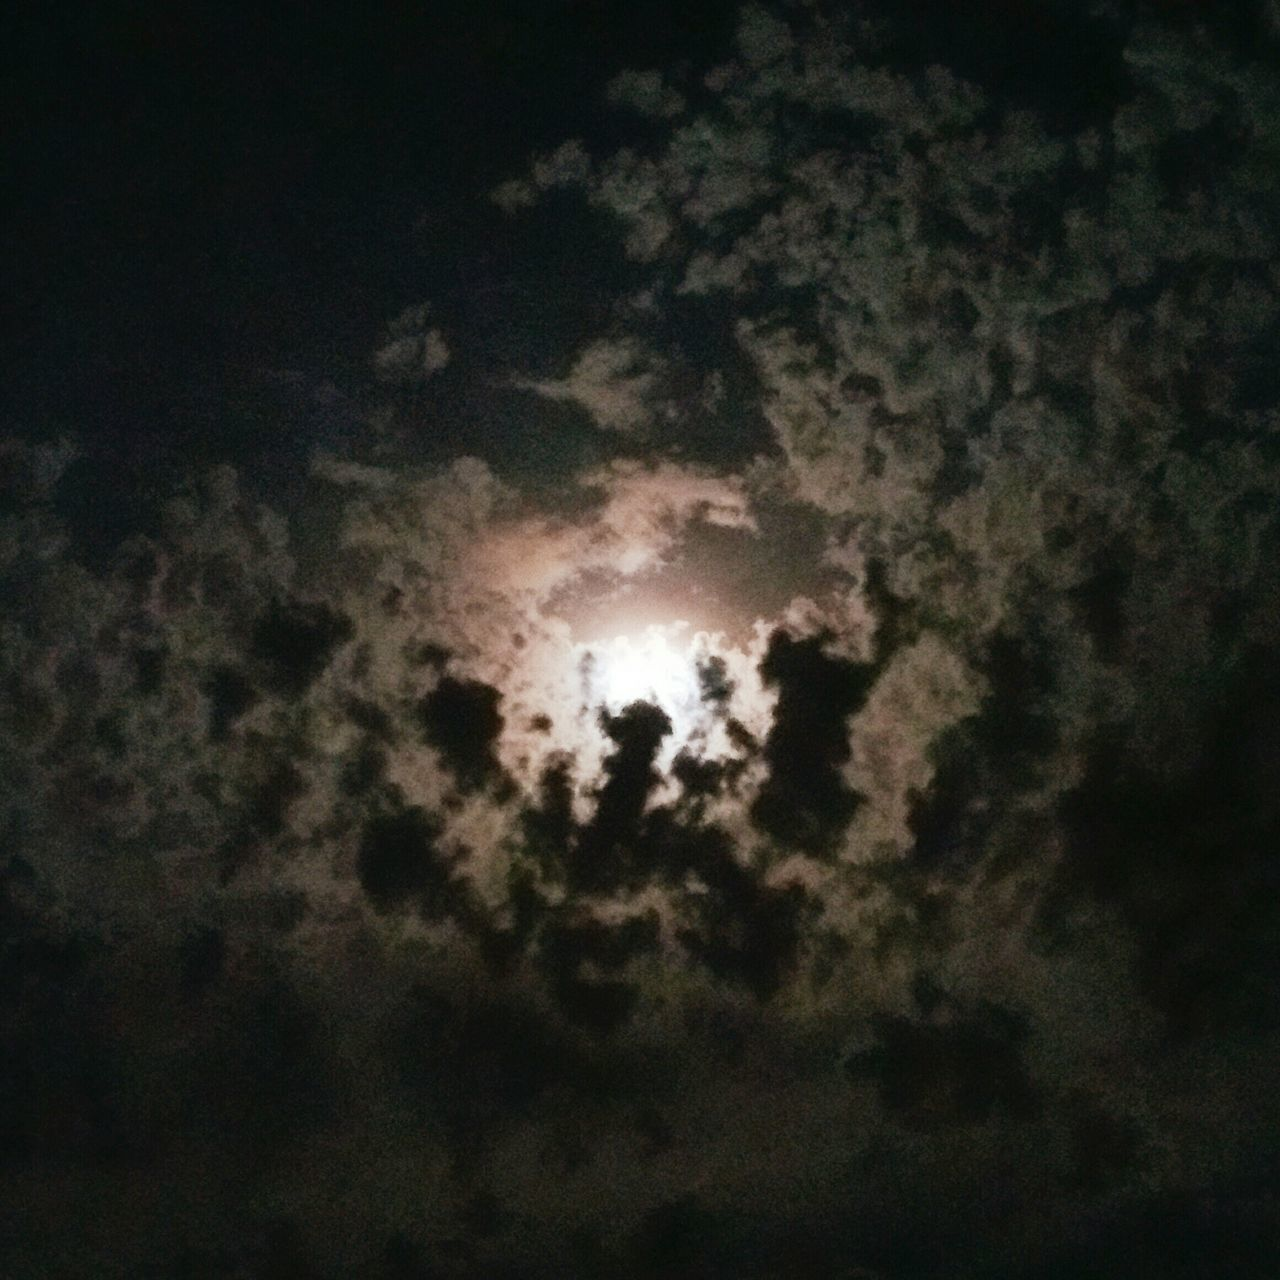 cloud - sky, sky, low angle view, beauty in nature, dramatic sky, nature, scenics, night, tranquil scene, sky only, outdoors, no people, silhouette, tranquility, sunset, awe, moon, astronomy, space, galaxy